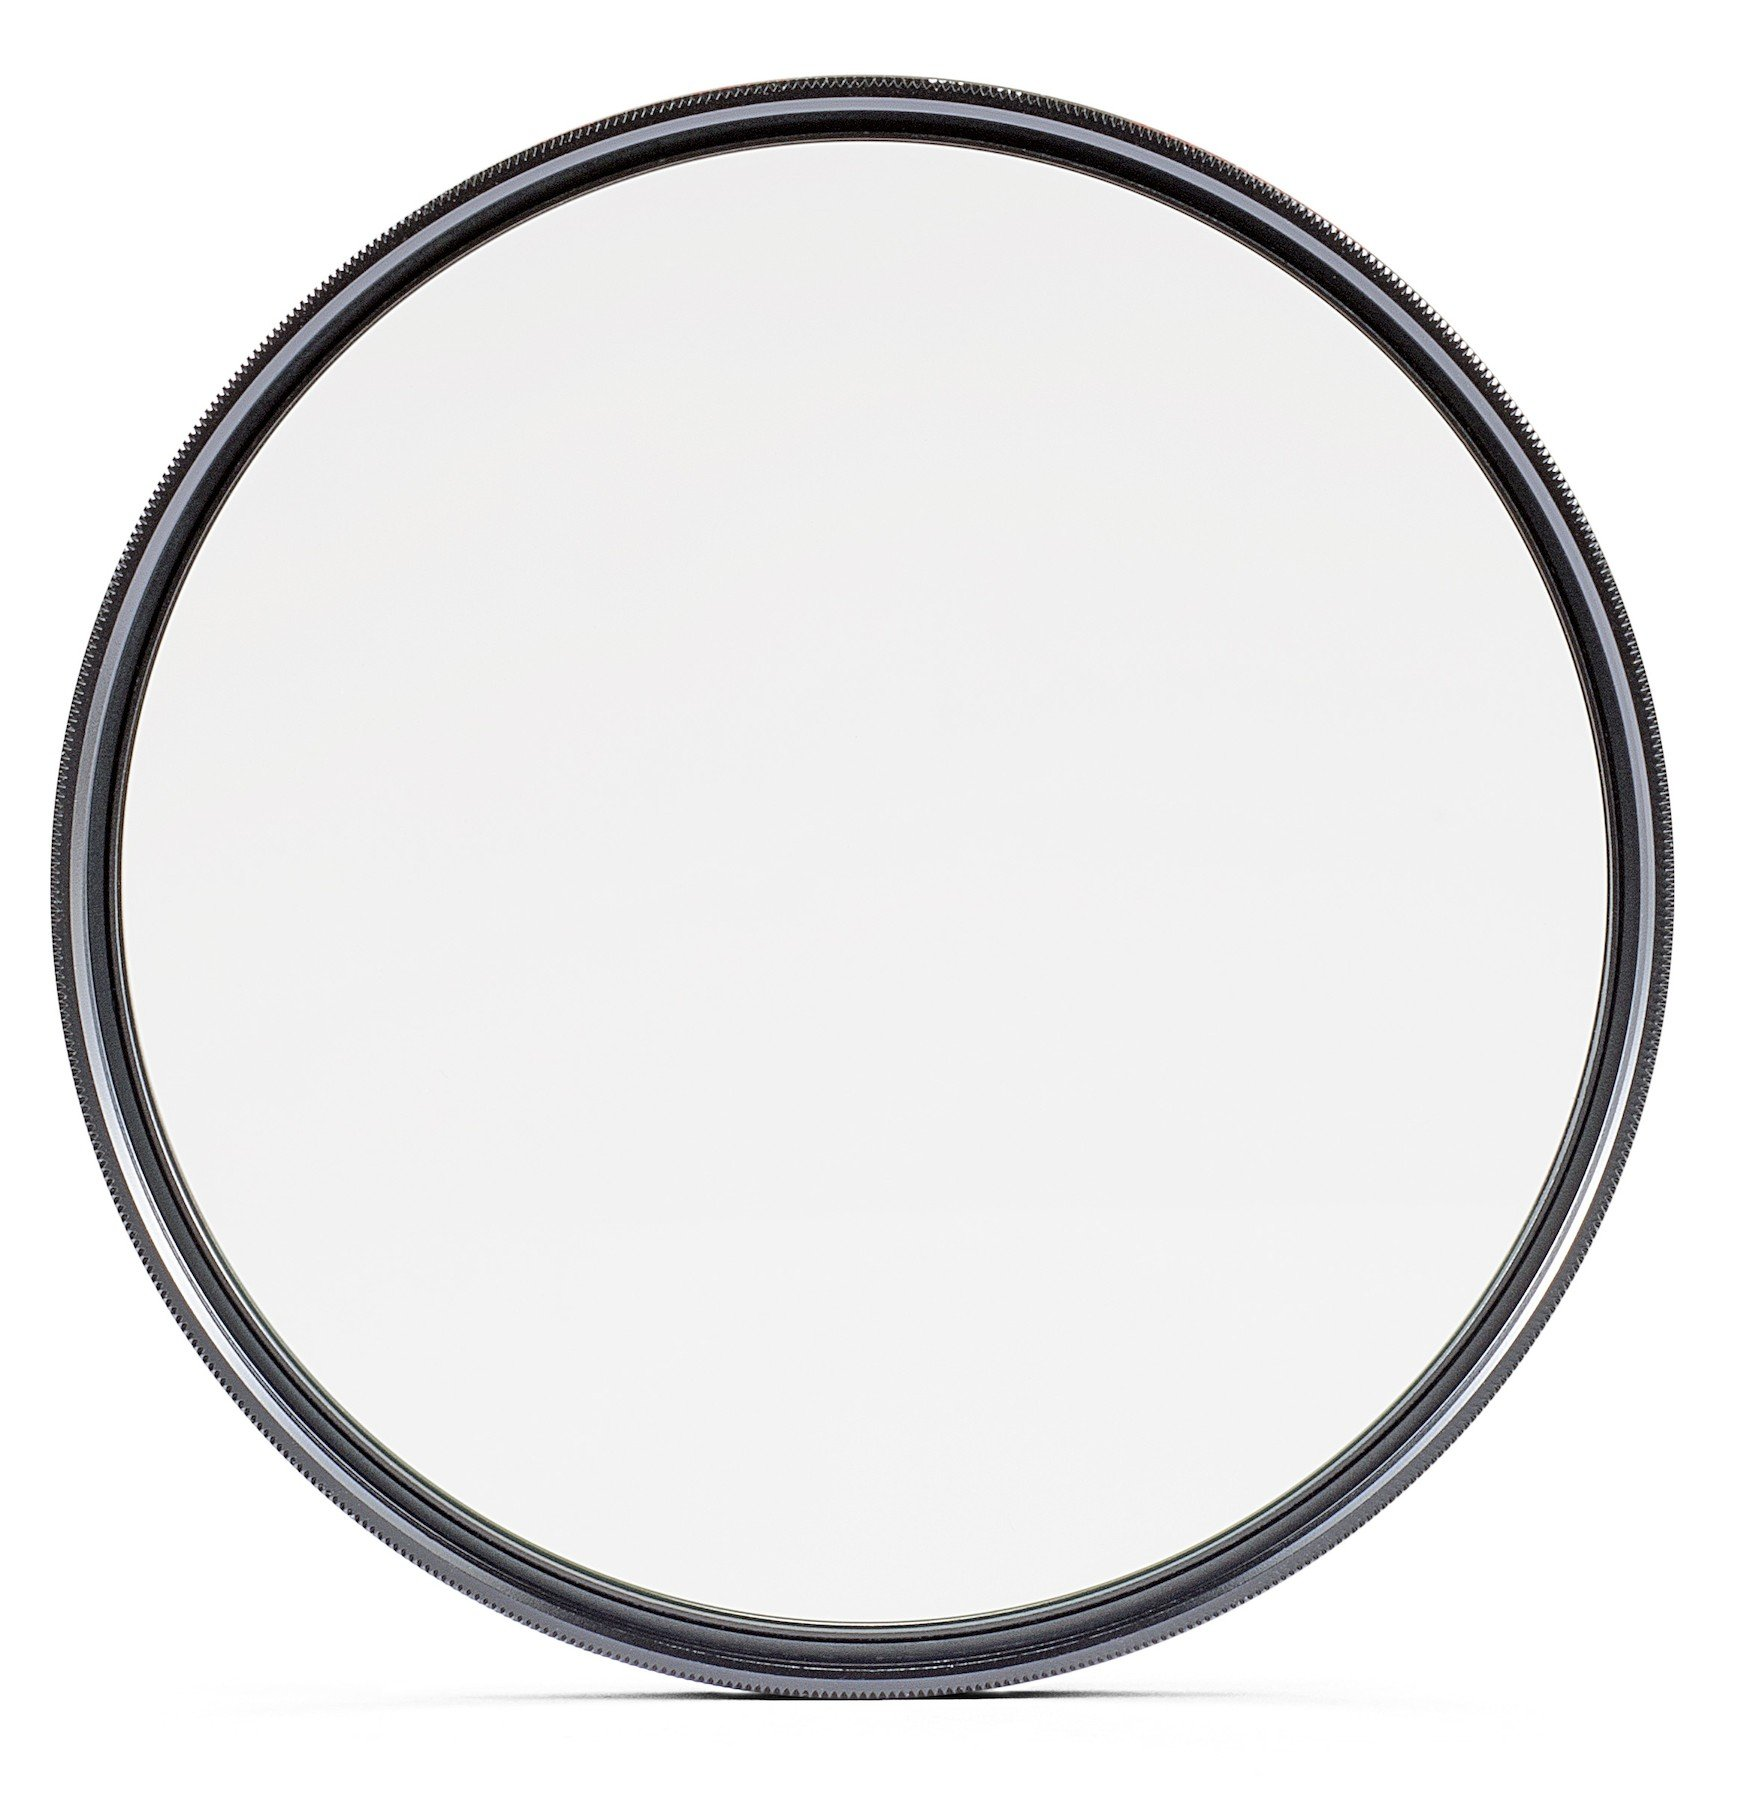 77mm Professional Protect Filter